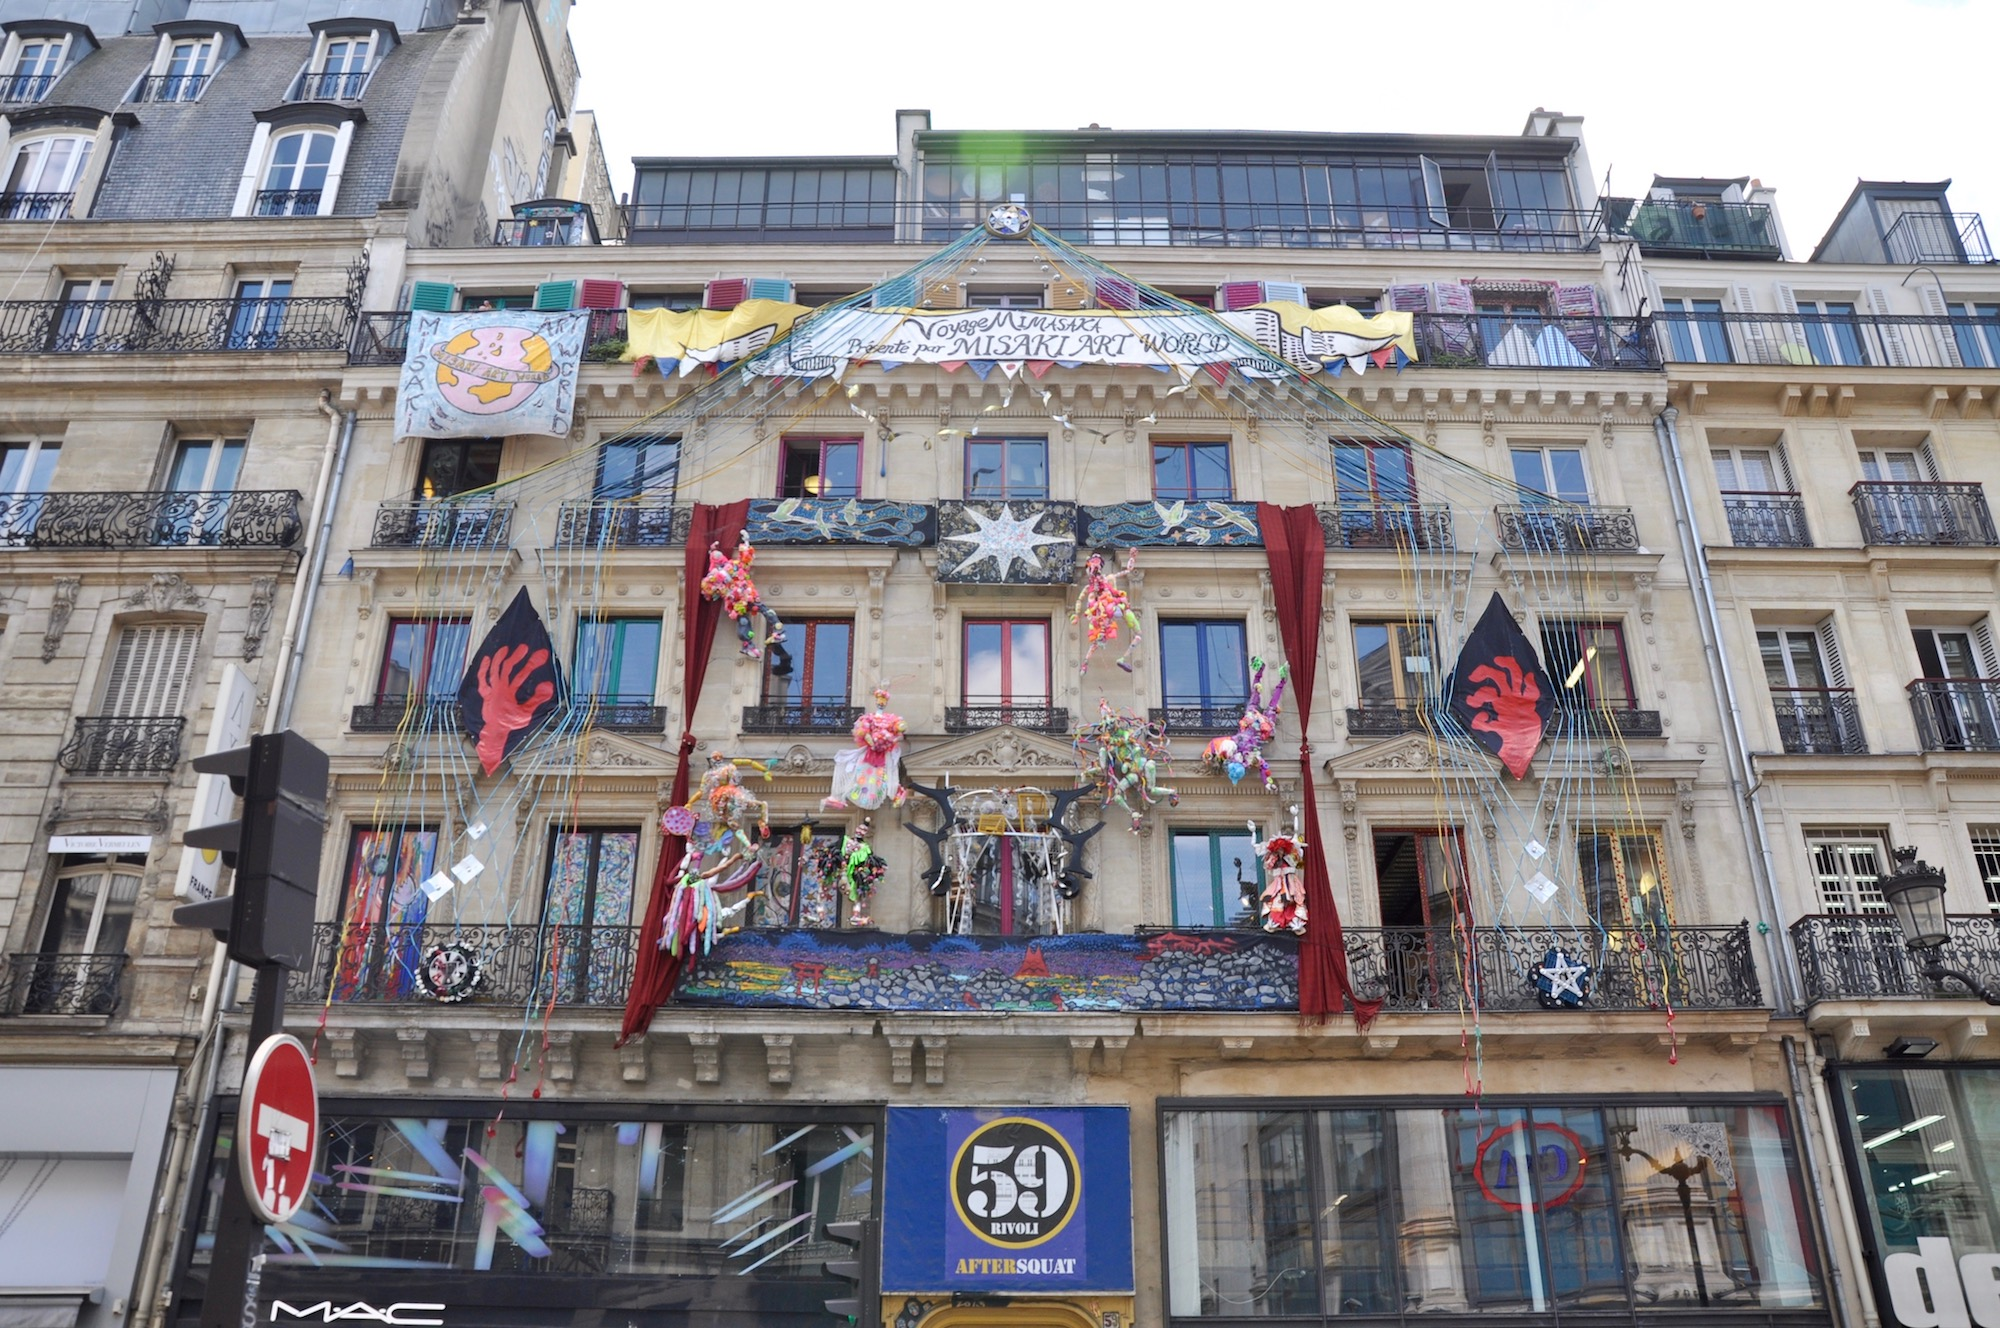 HiP Paris Blog discovers the many artist squats in Paris like the 59 Rivoli, which you can see adorned with art from the street.